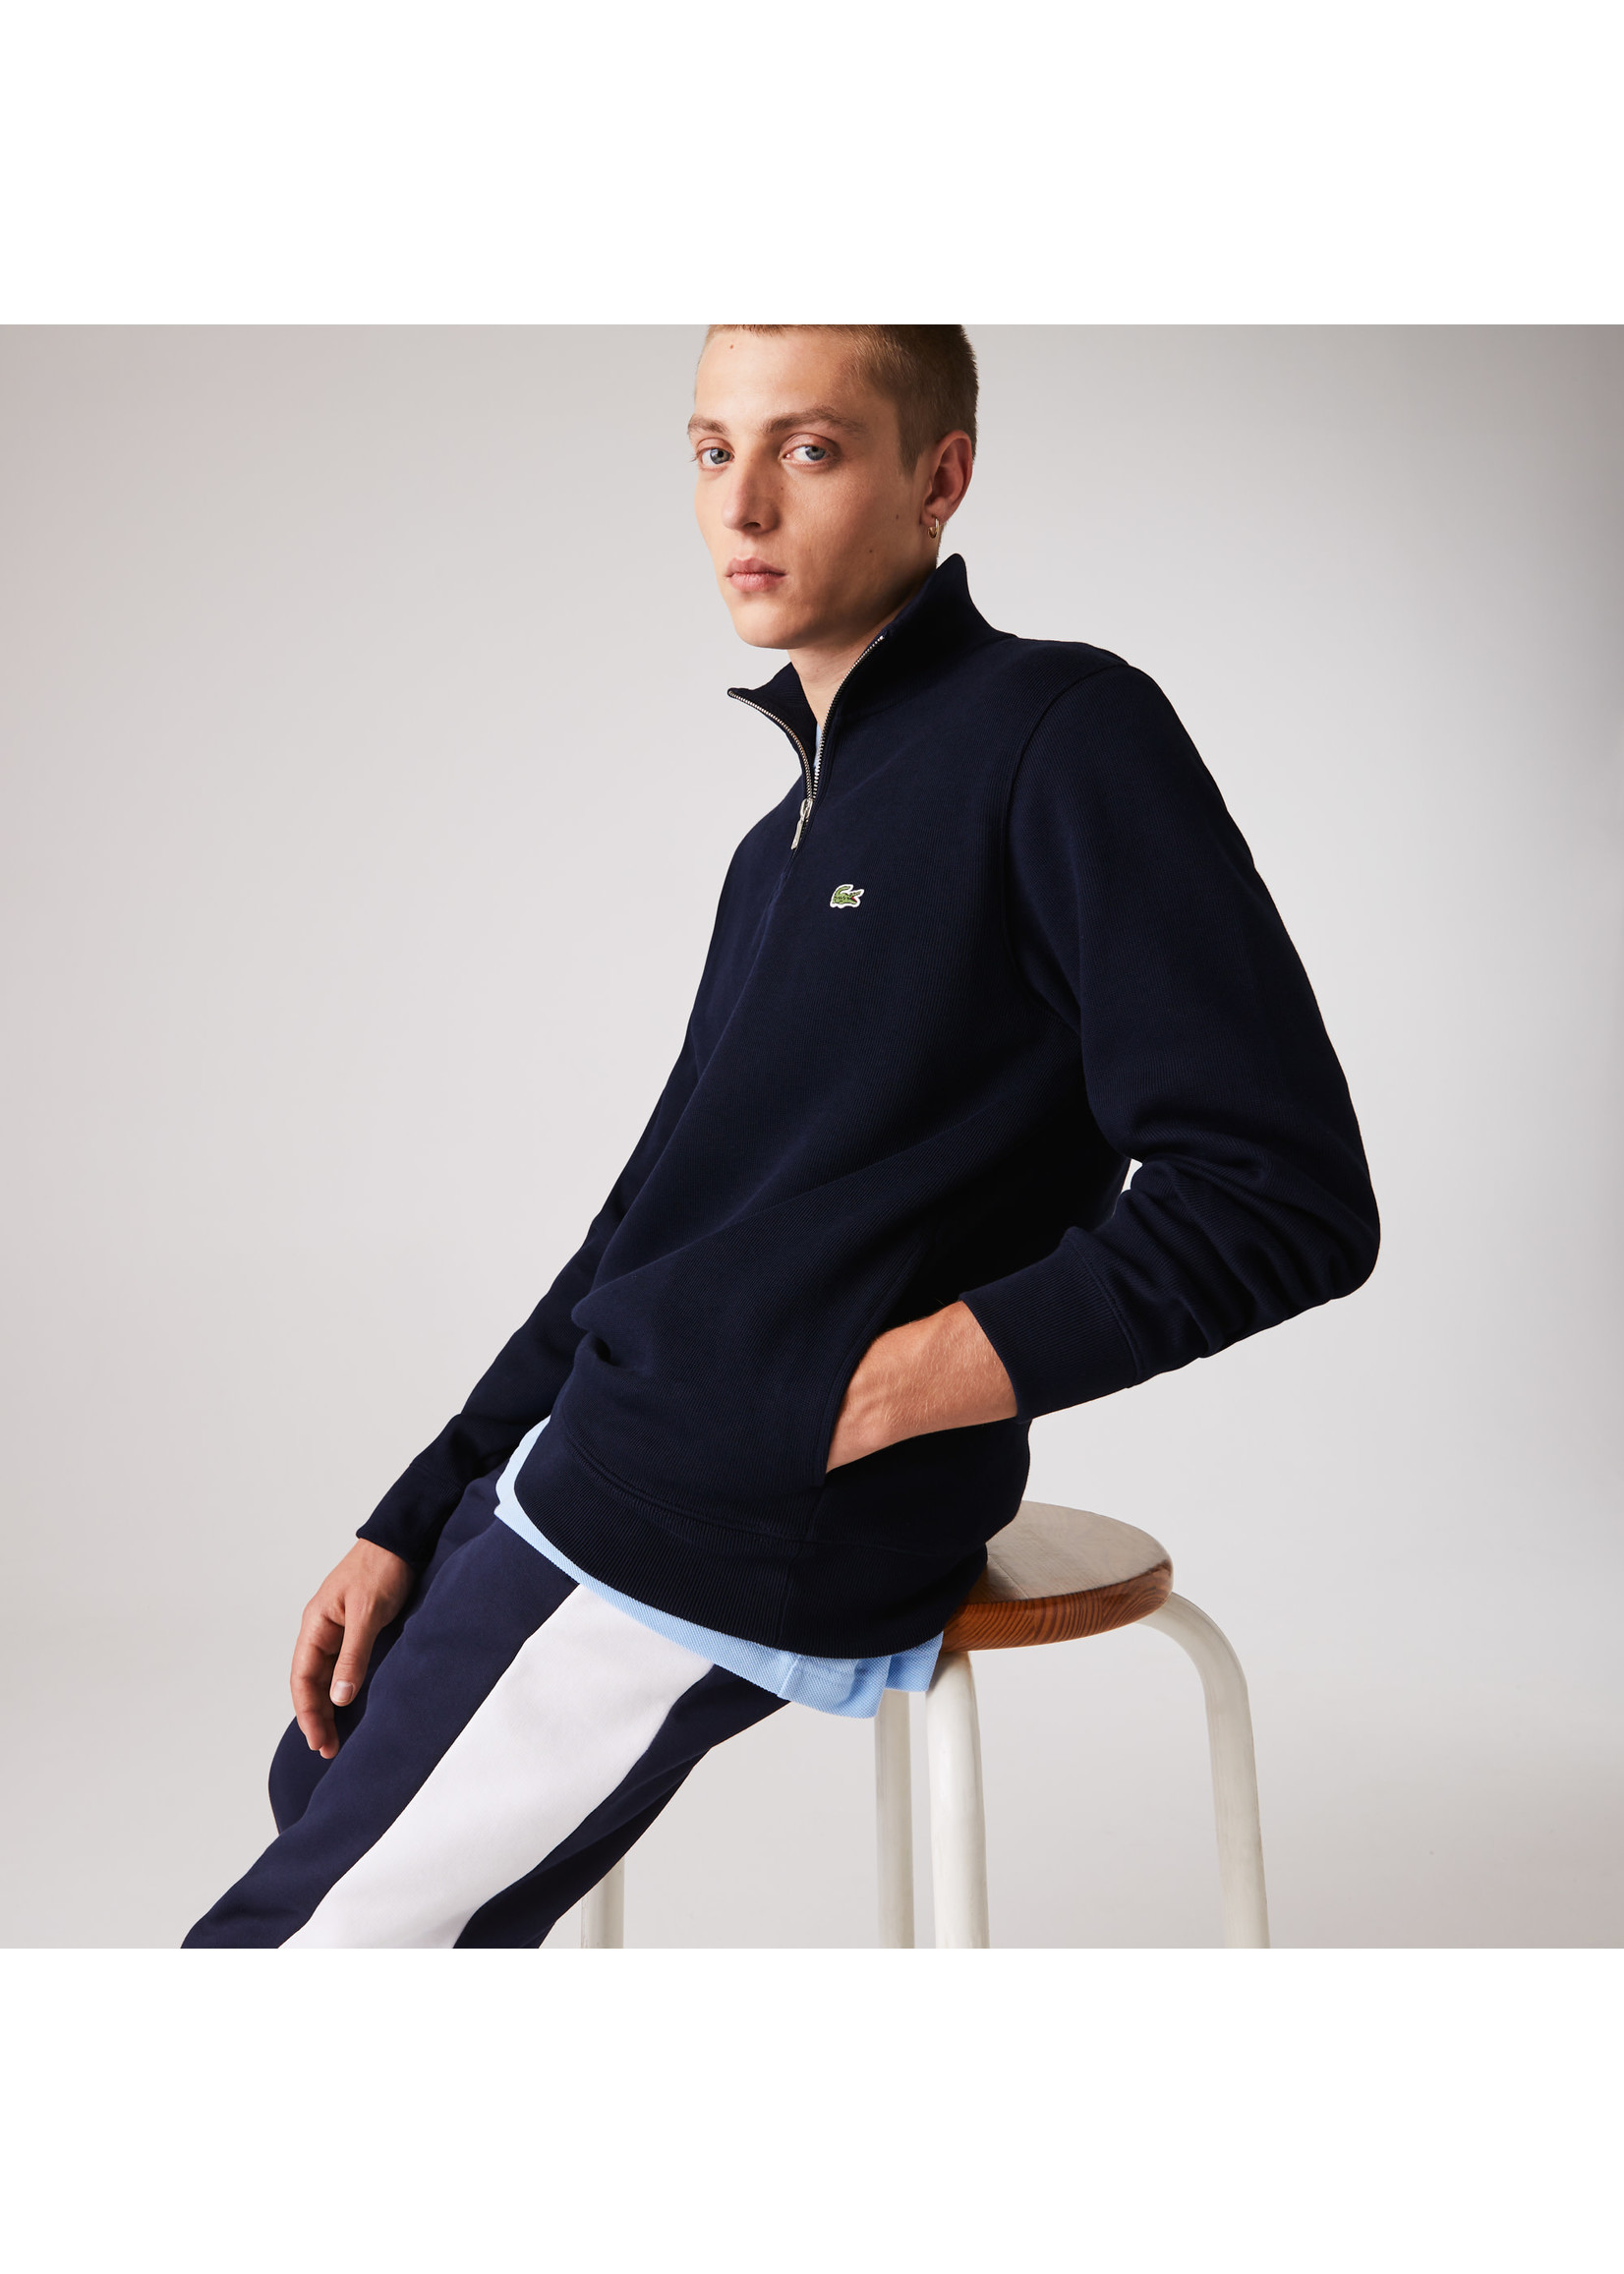 Lacoste sweater rits marine